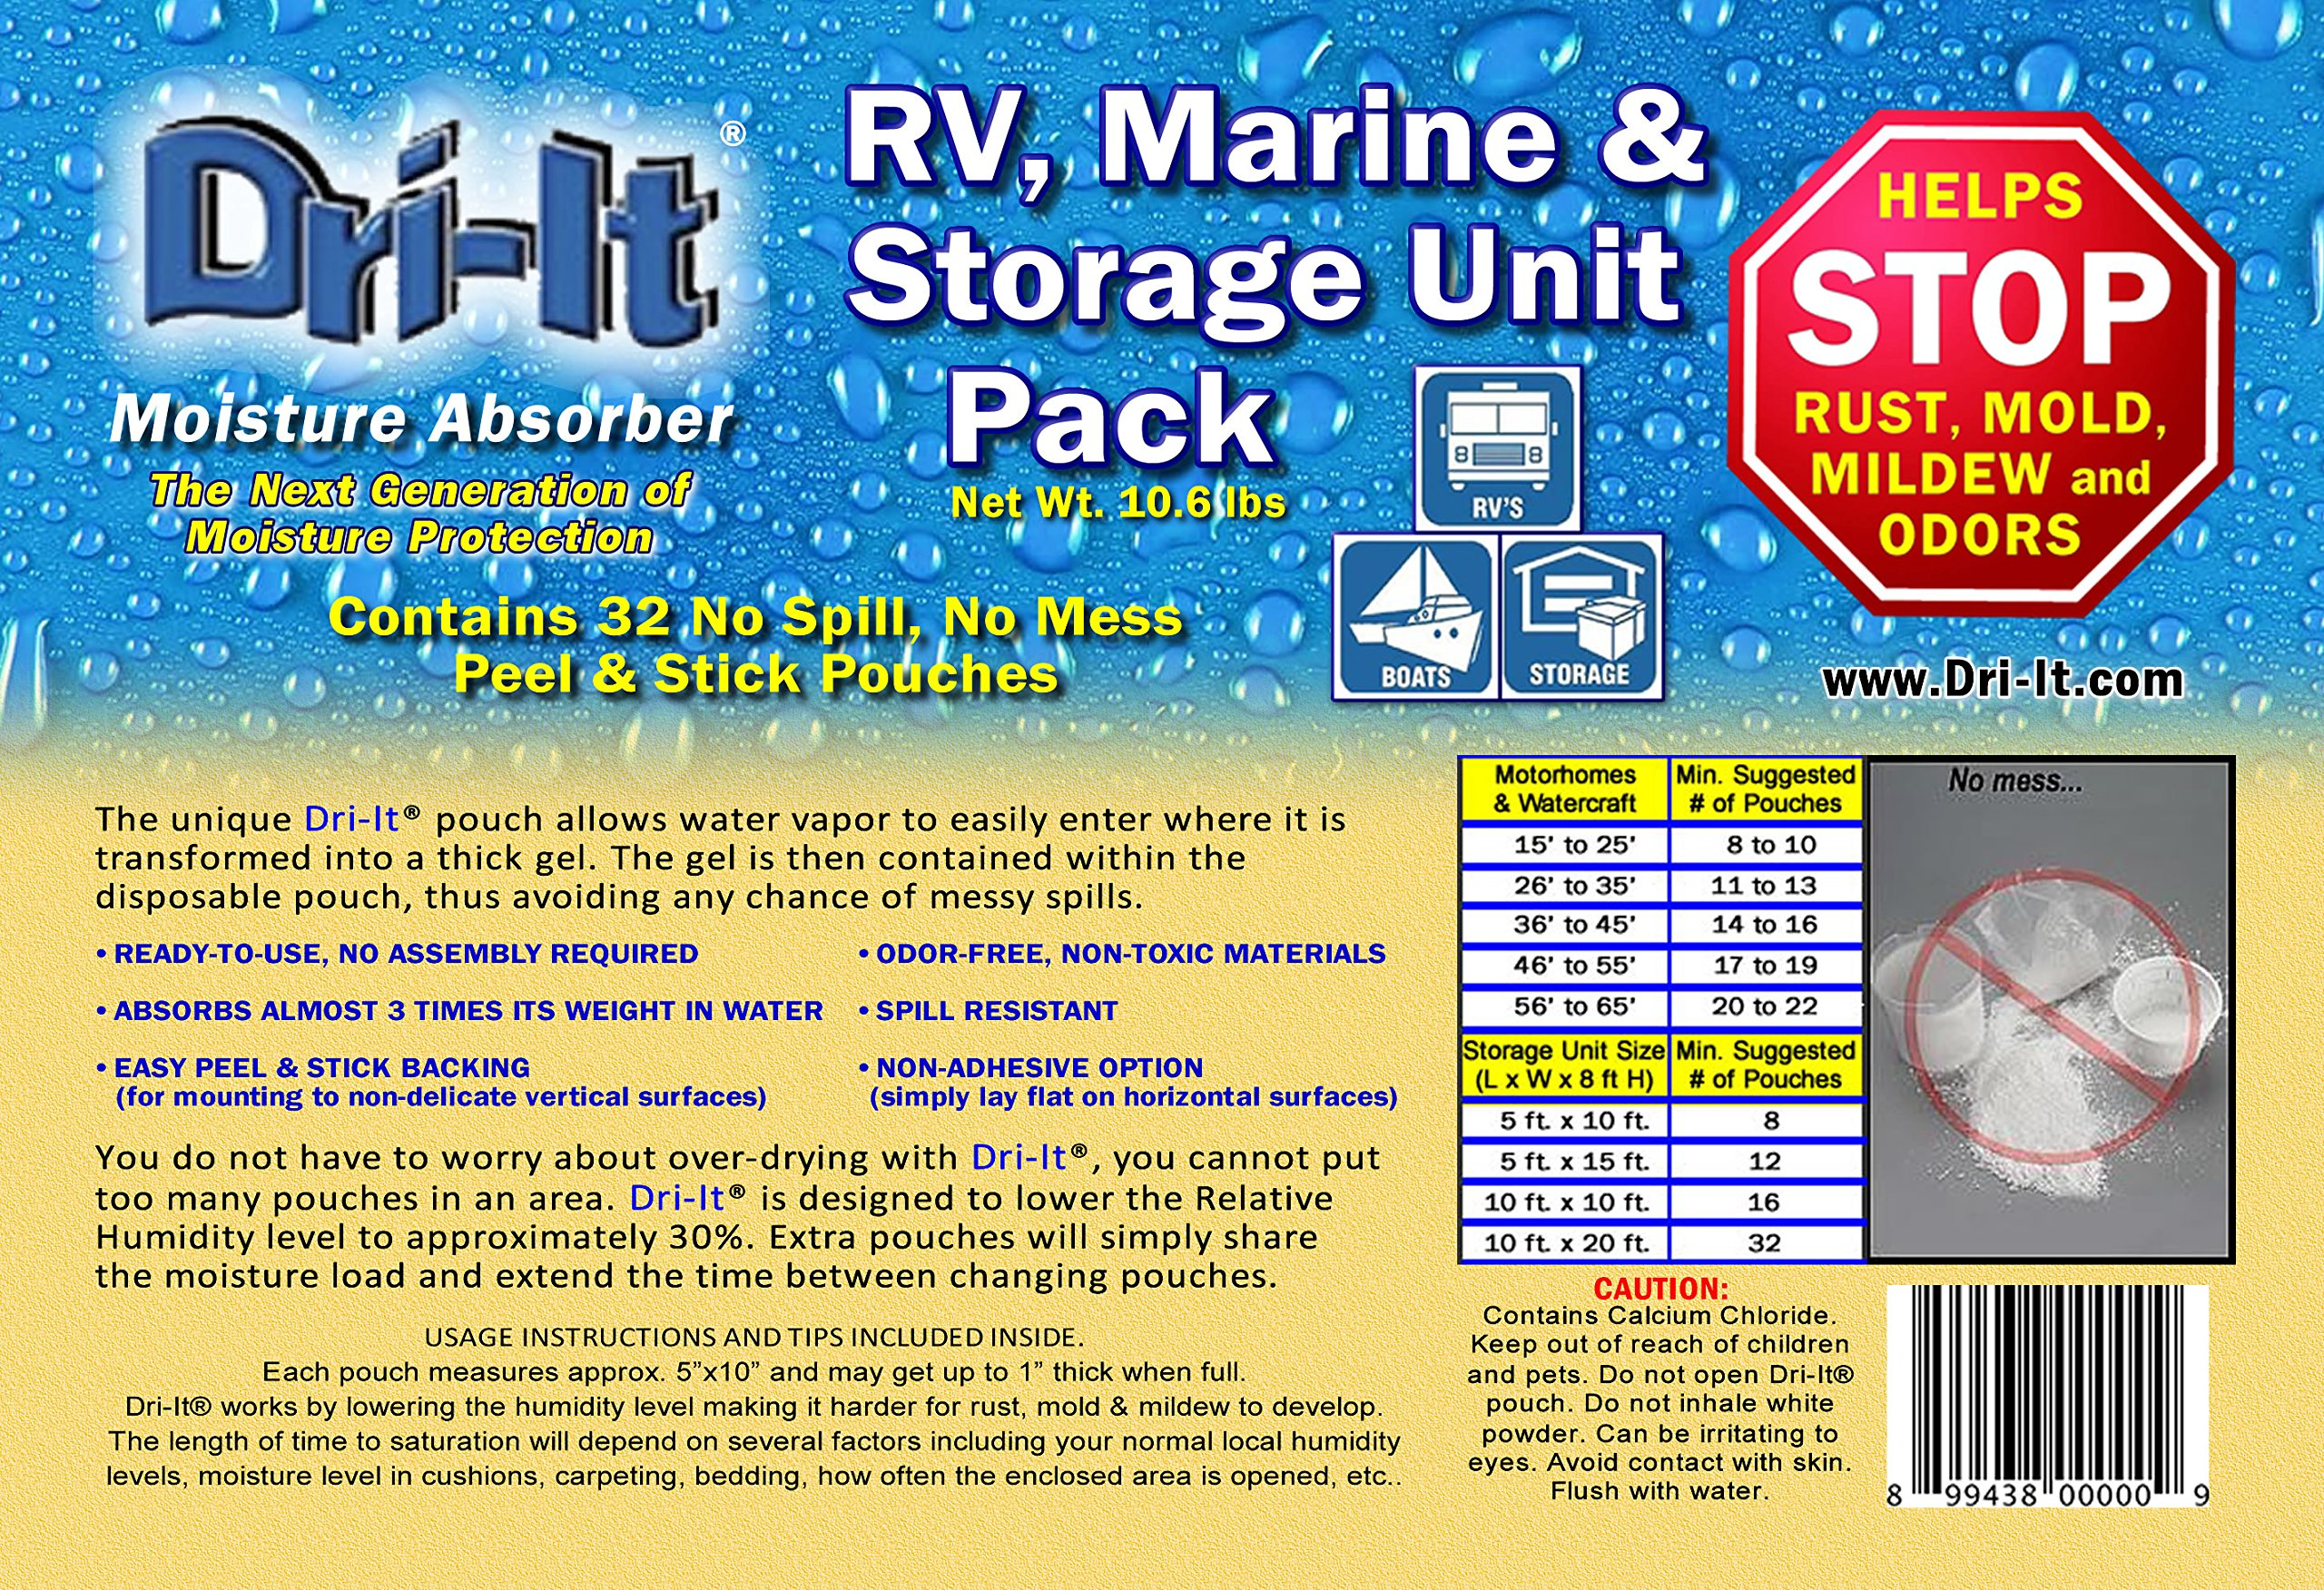 Dri-It RV, Marine and Storage Unit Pack (32 pouches)